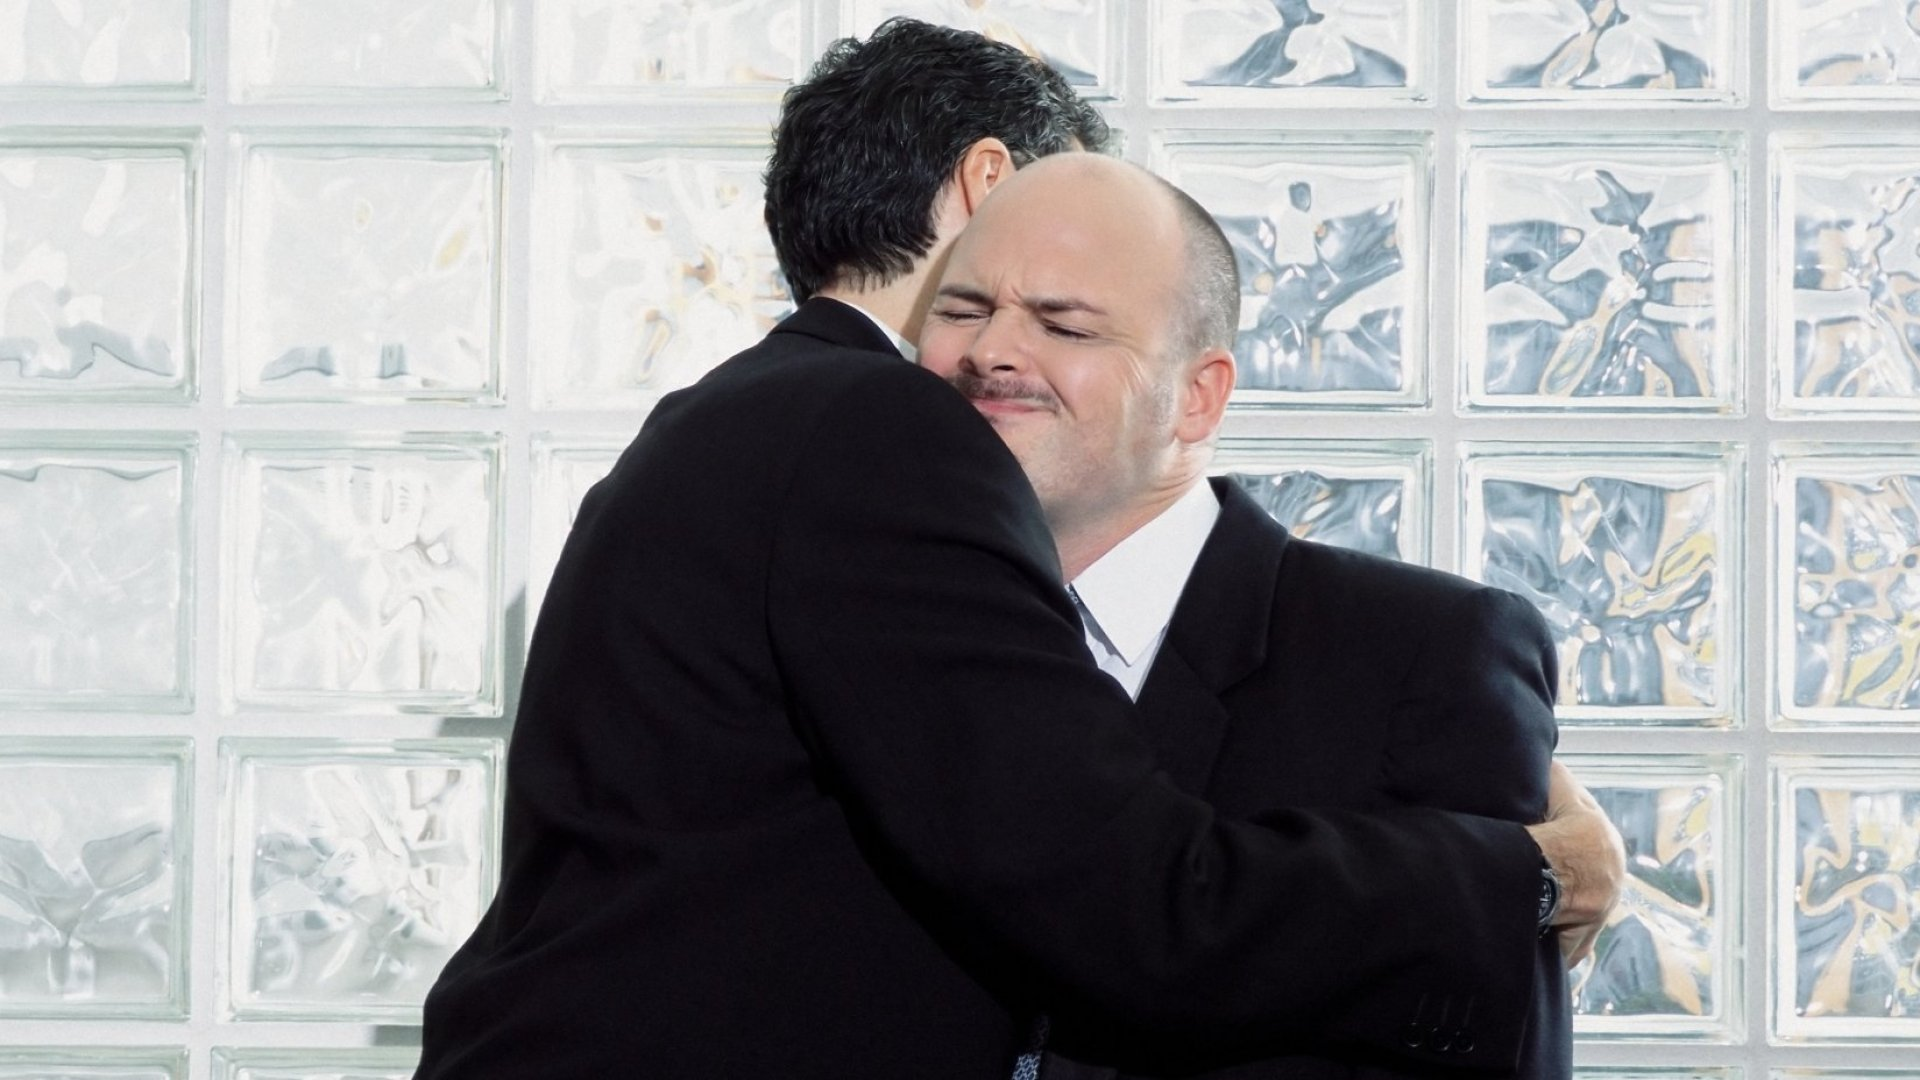 Why Business Leaders Need Empathy Now More Than Ever